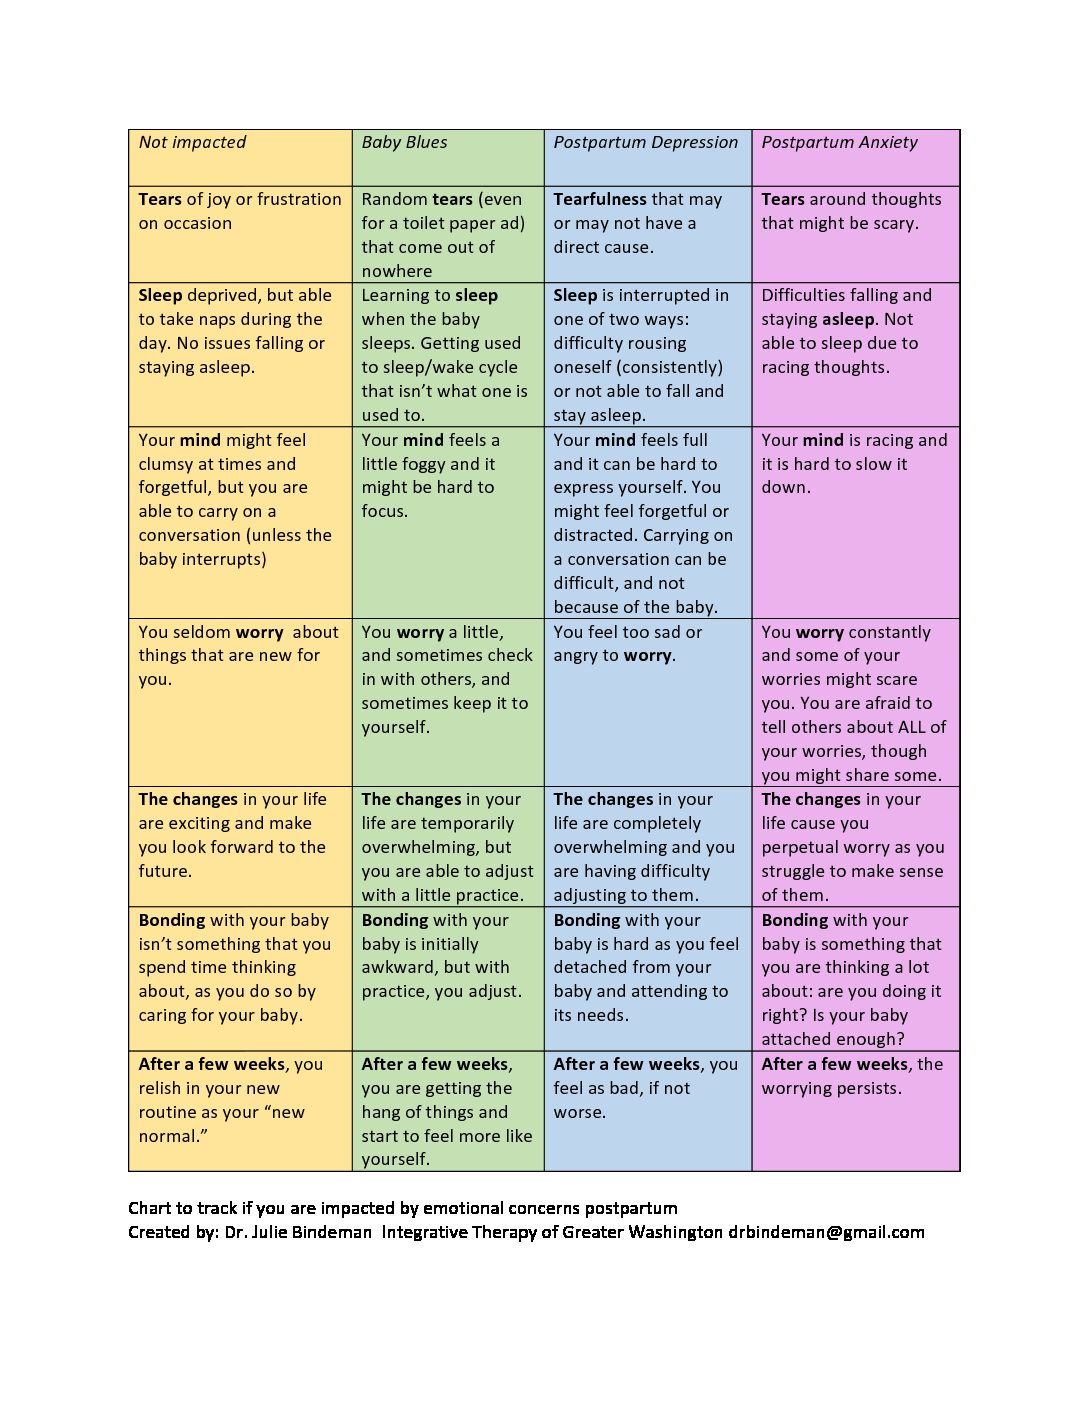 Understanding Perinatal Mood Issues When Is It A Problem